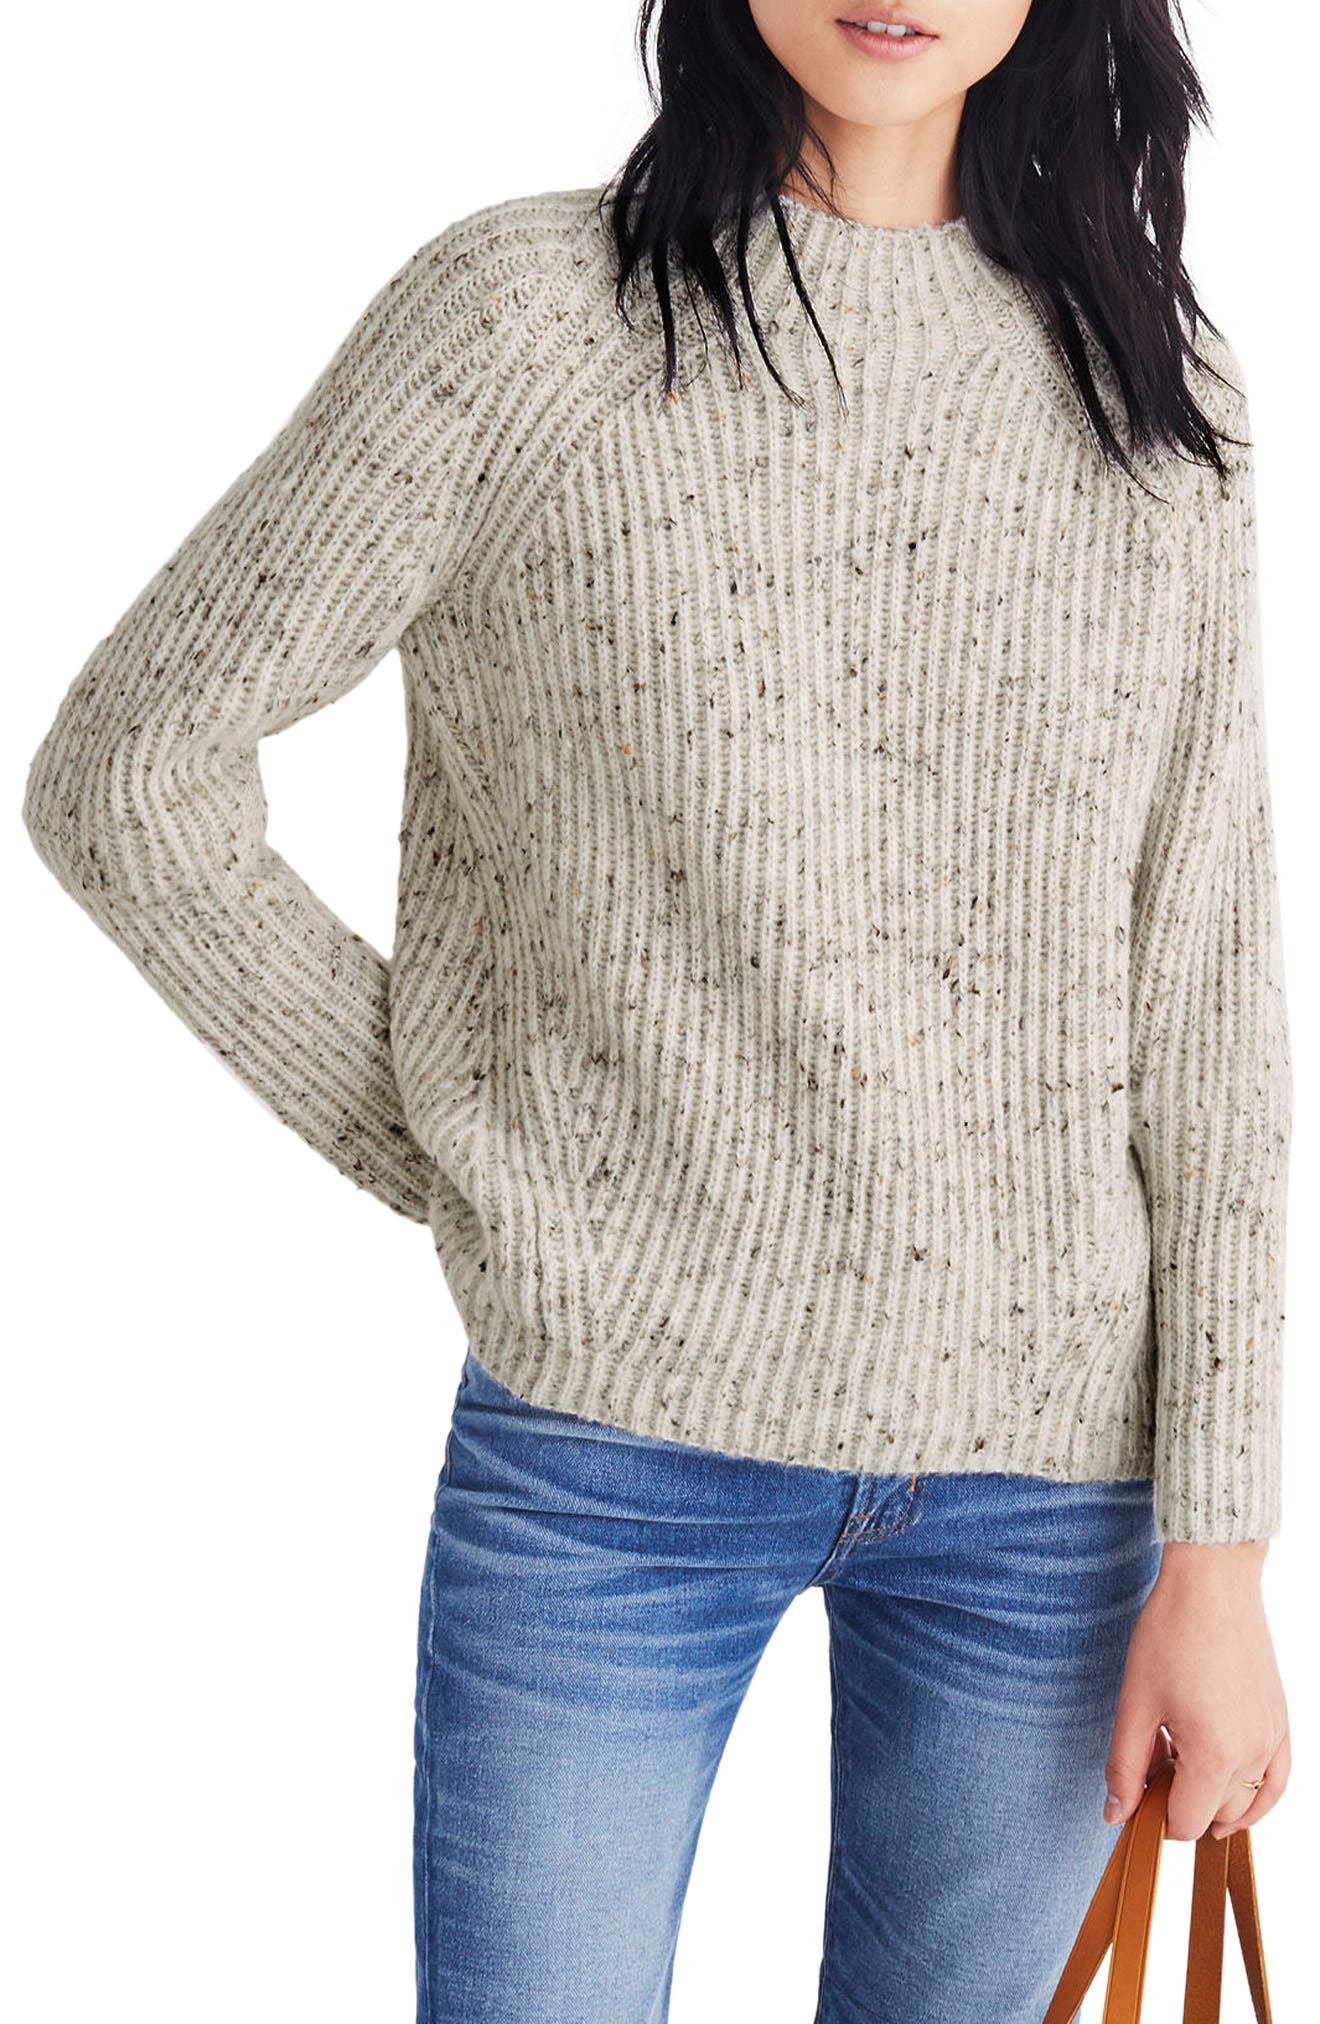 Donegal Northfield Mockneck Sweater,                             Main thumbnail 1, color,                             100